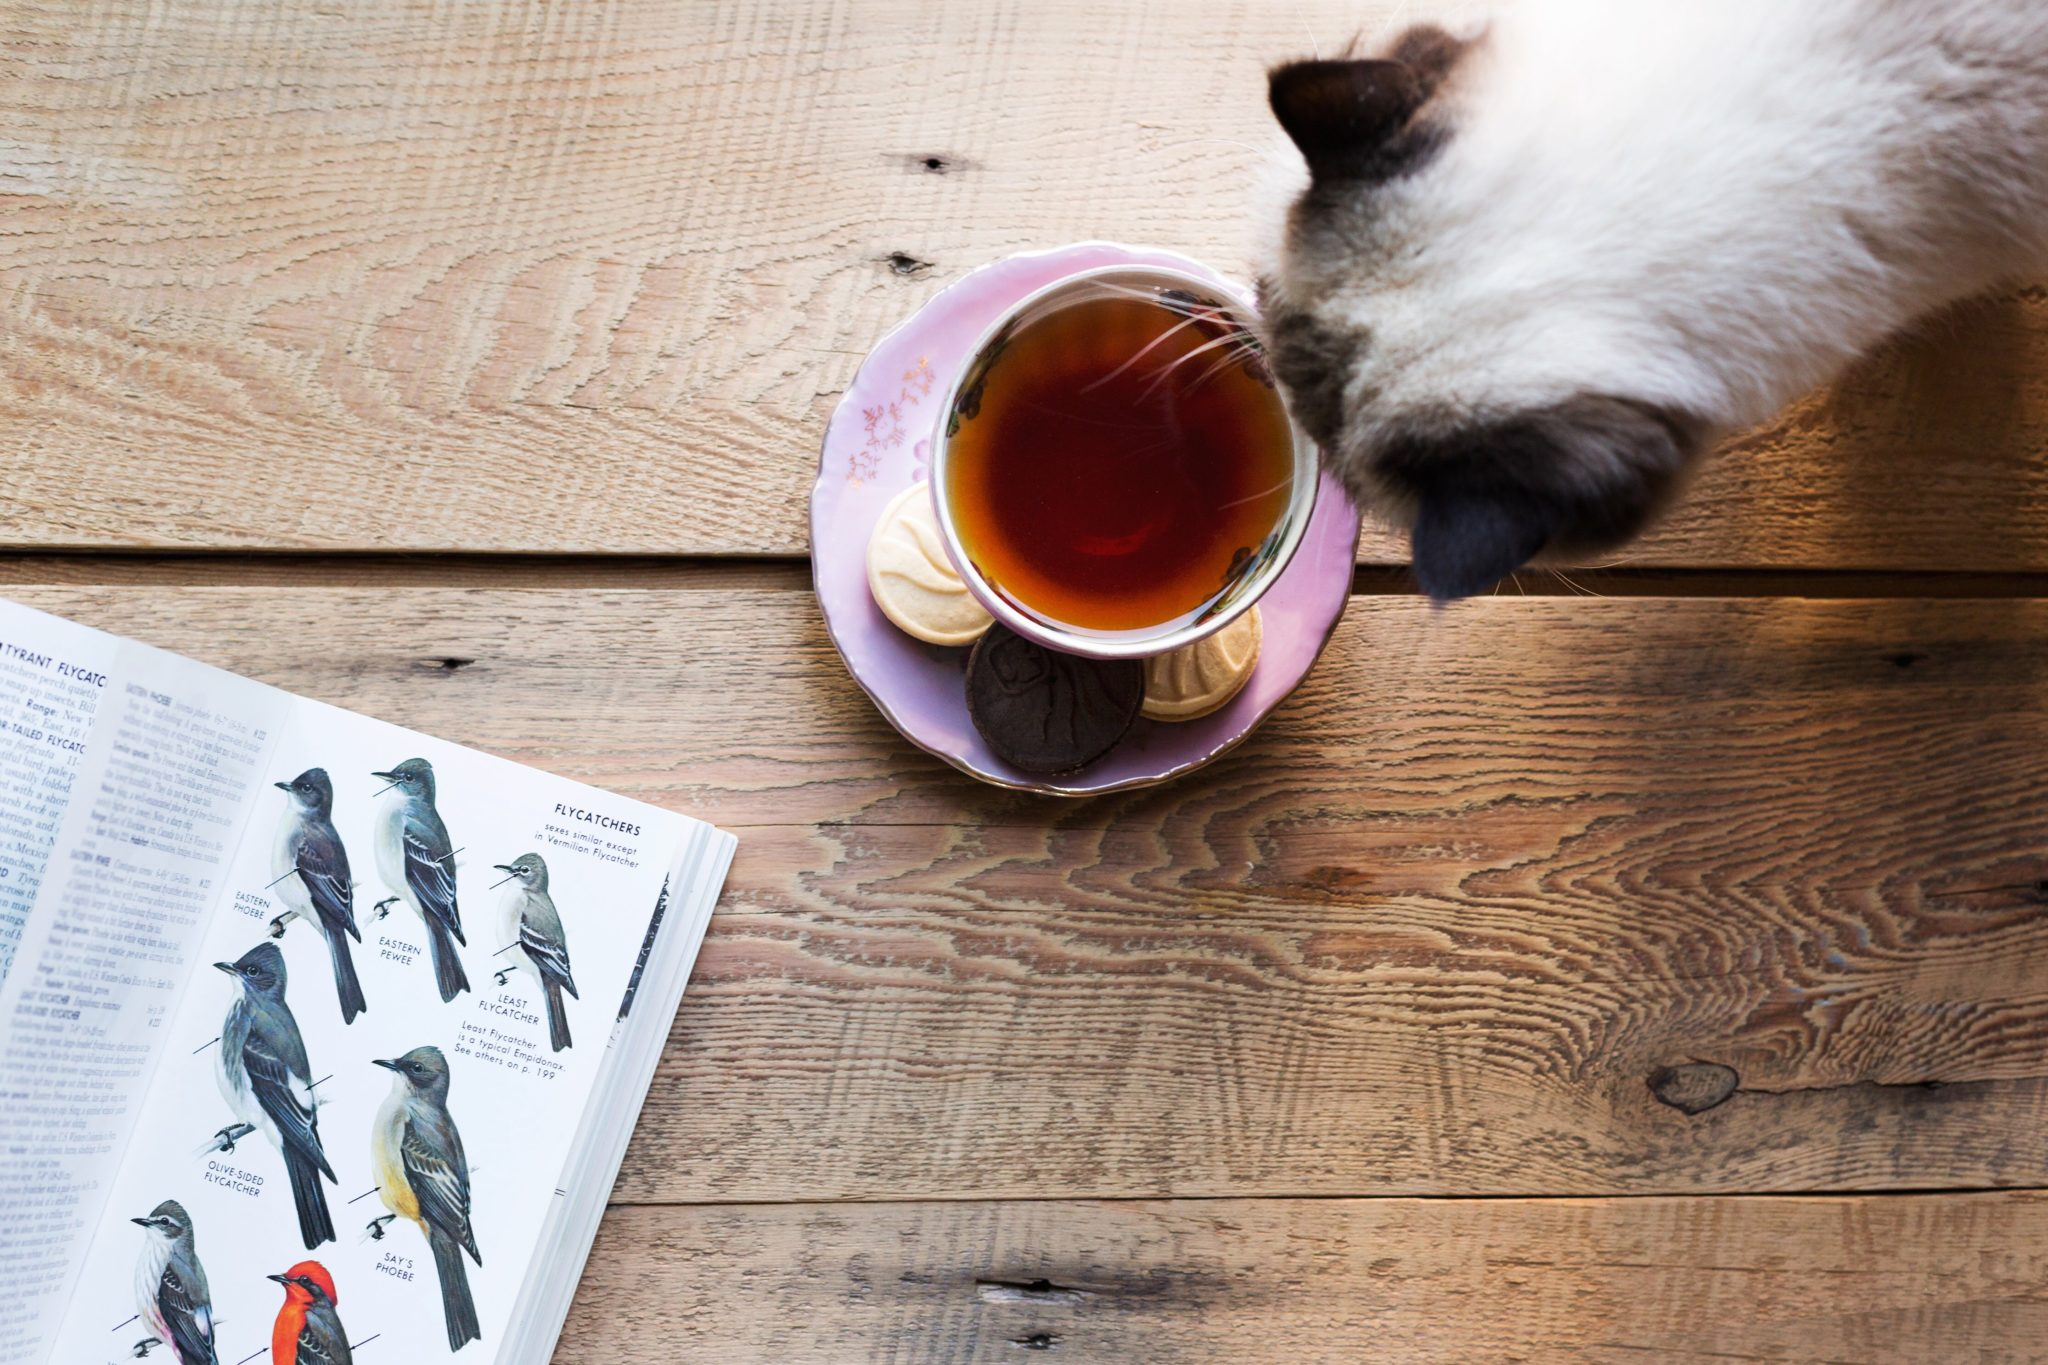 Tea time with the cat